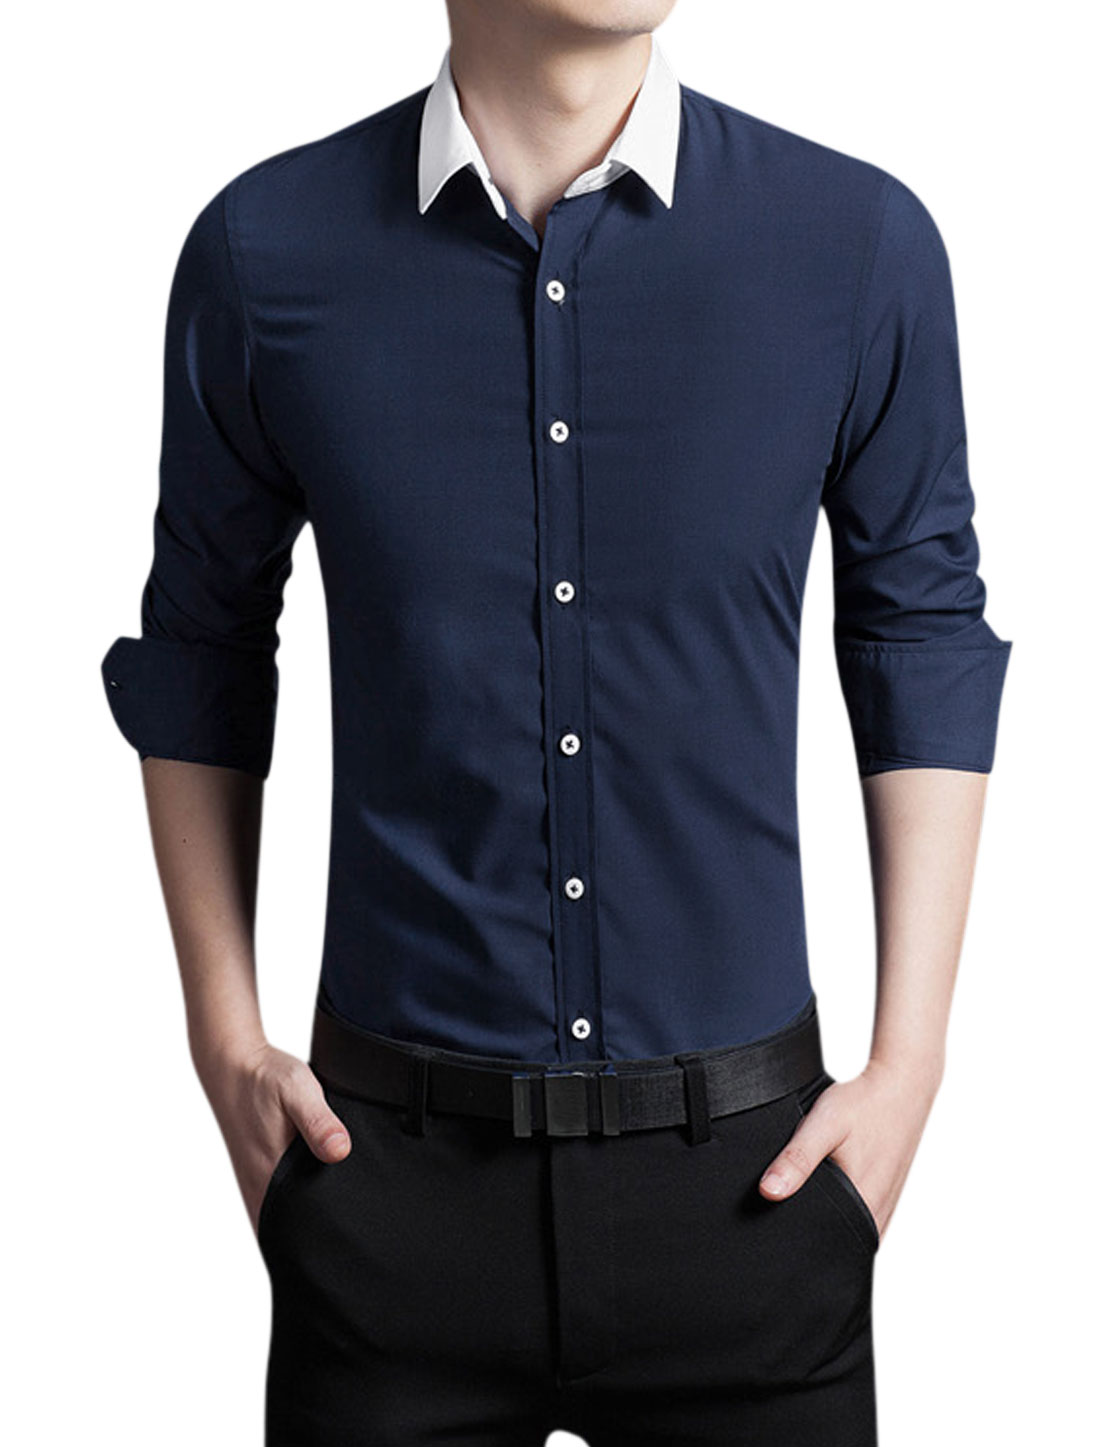 Man Point Collar Button Up Slim Fit Long Sleeves Shirt Navy Blue M